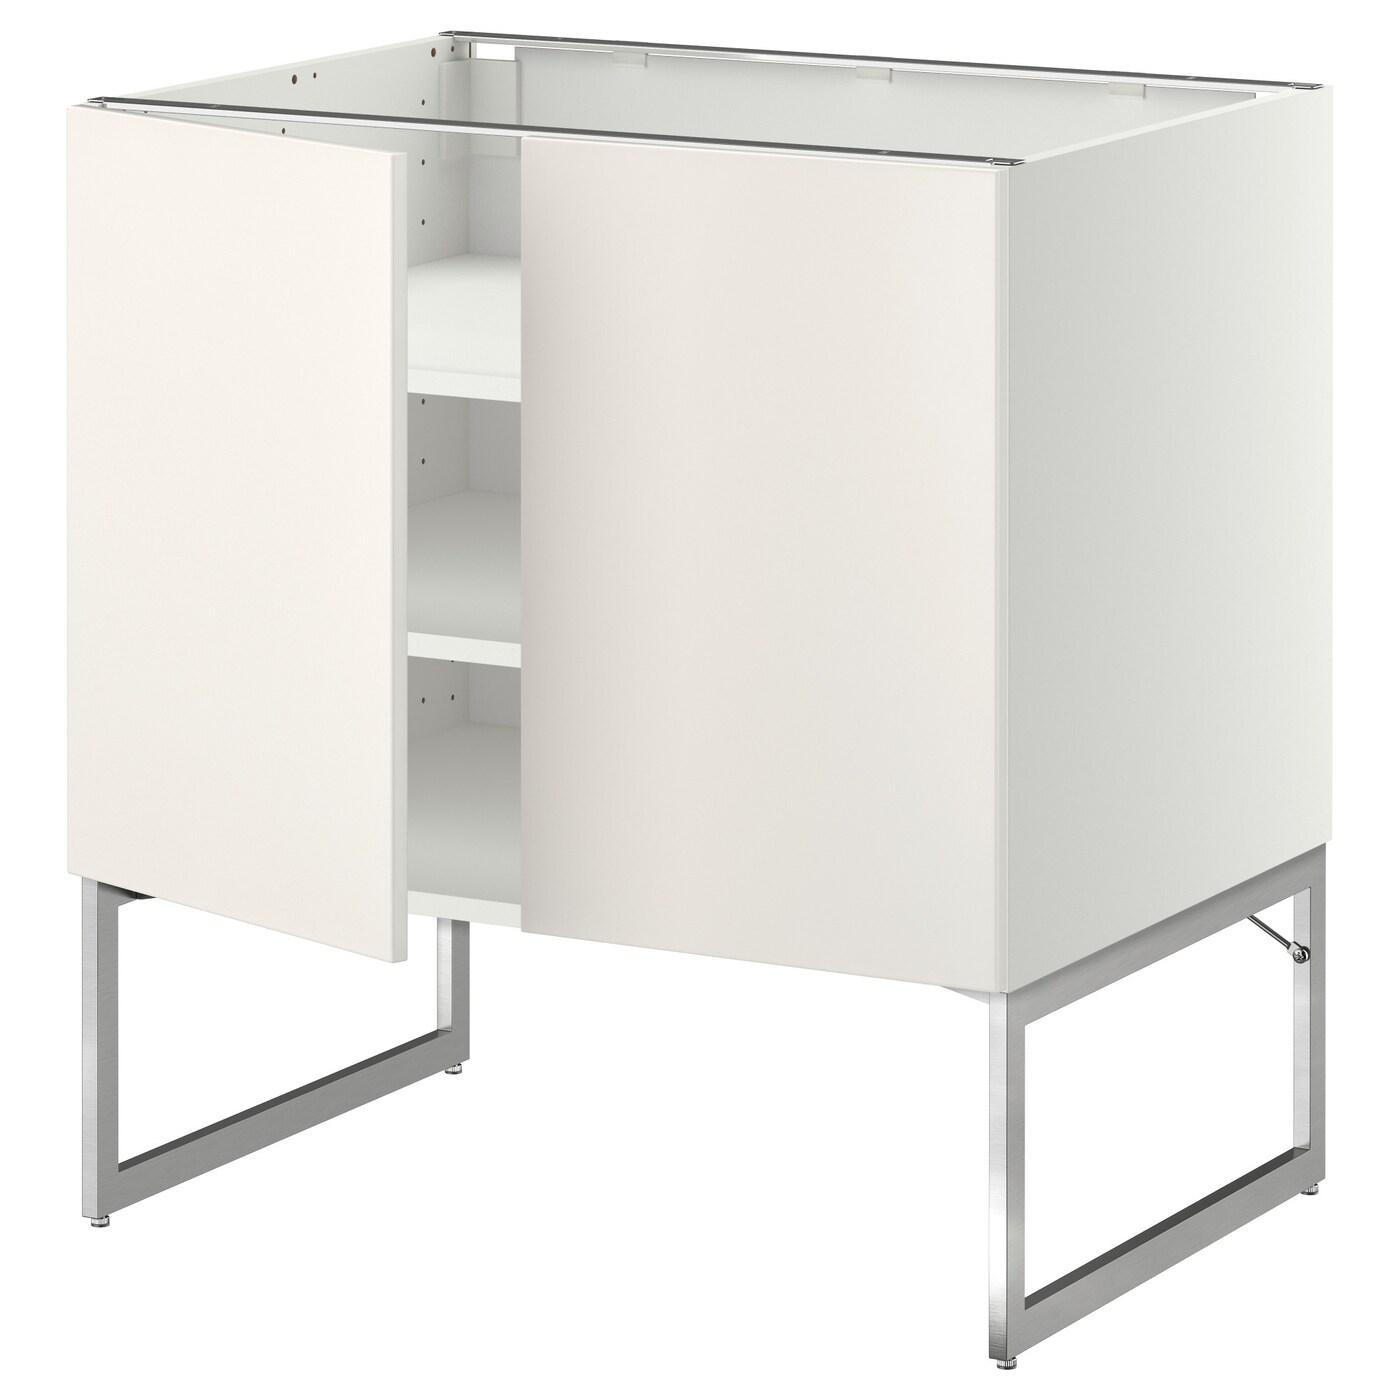 Ikea Schrankküche Metod Base Cabinet With Shelves 2 Doors White Veddinge